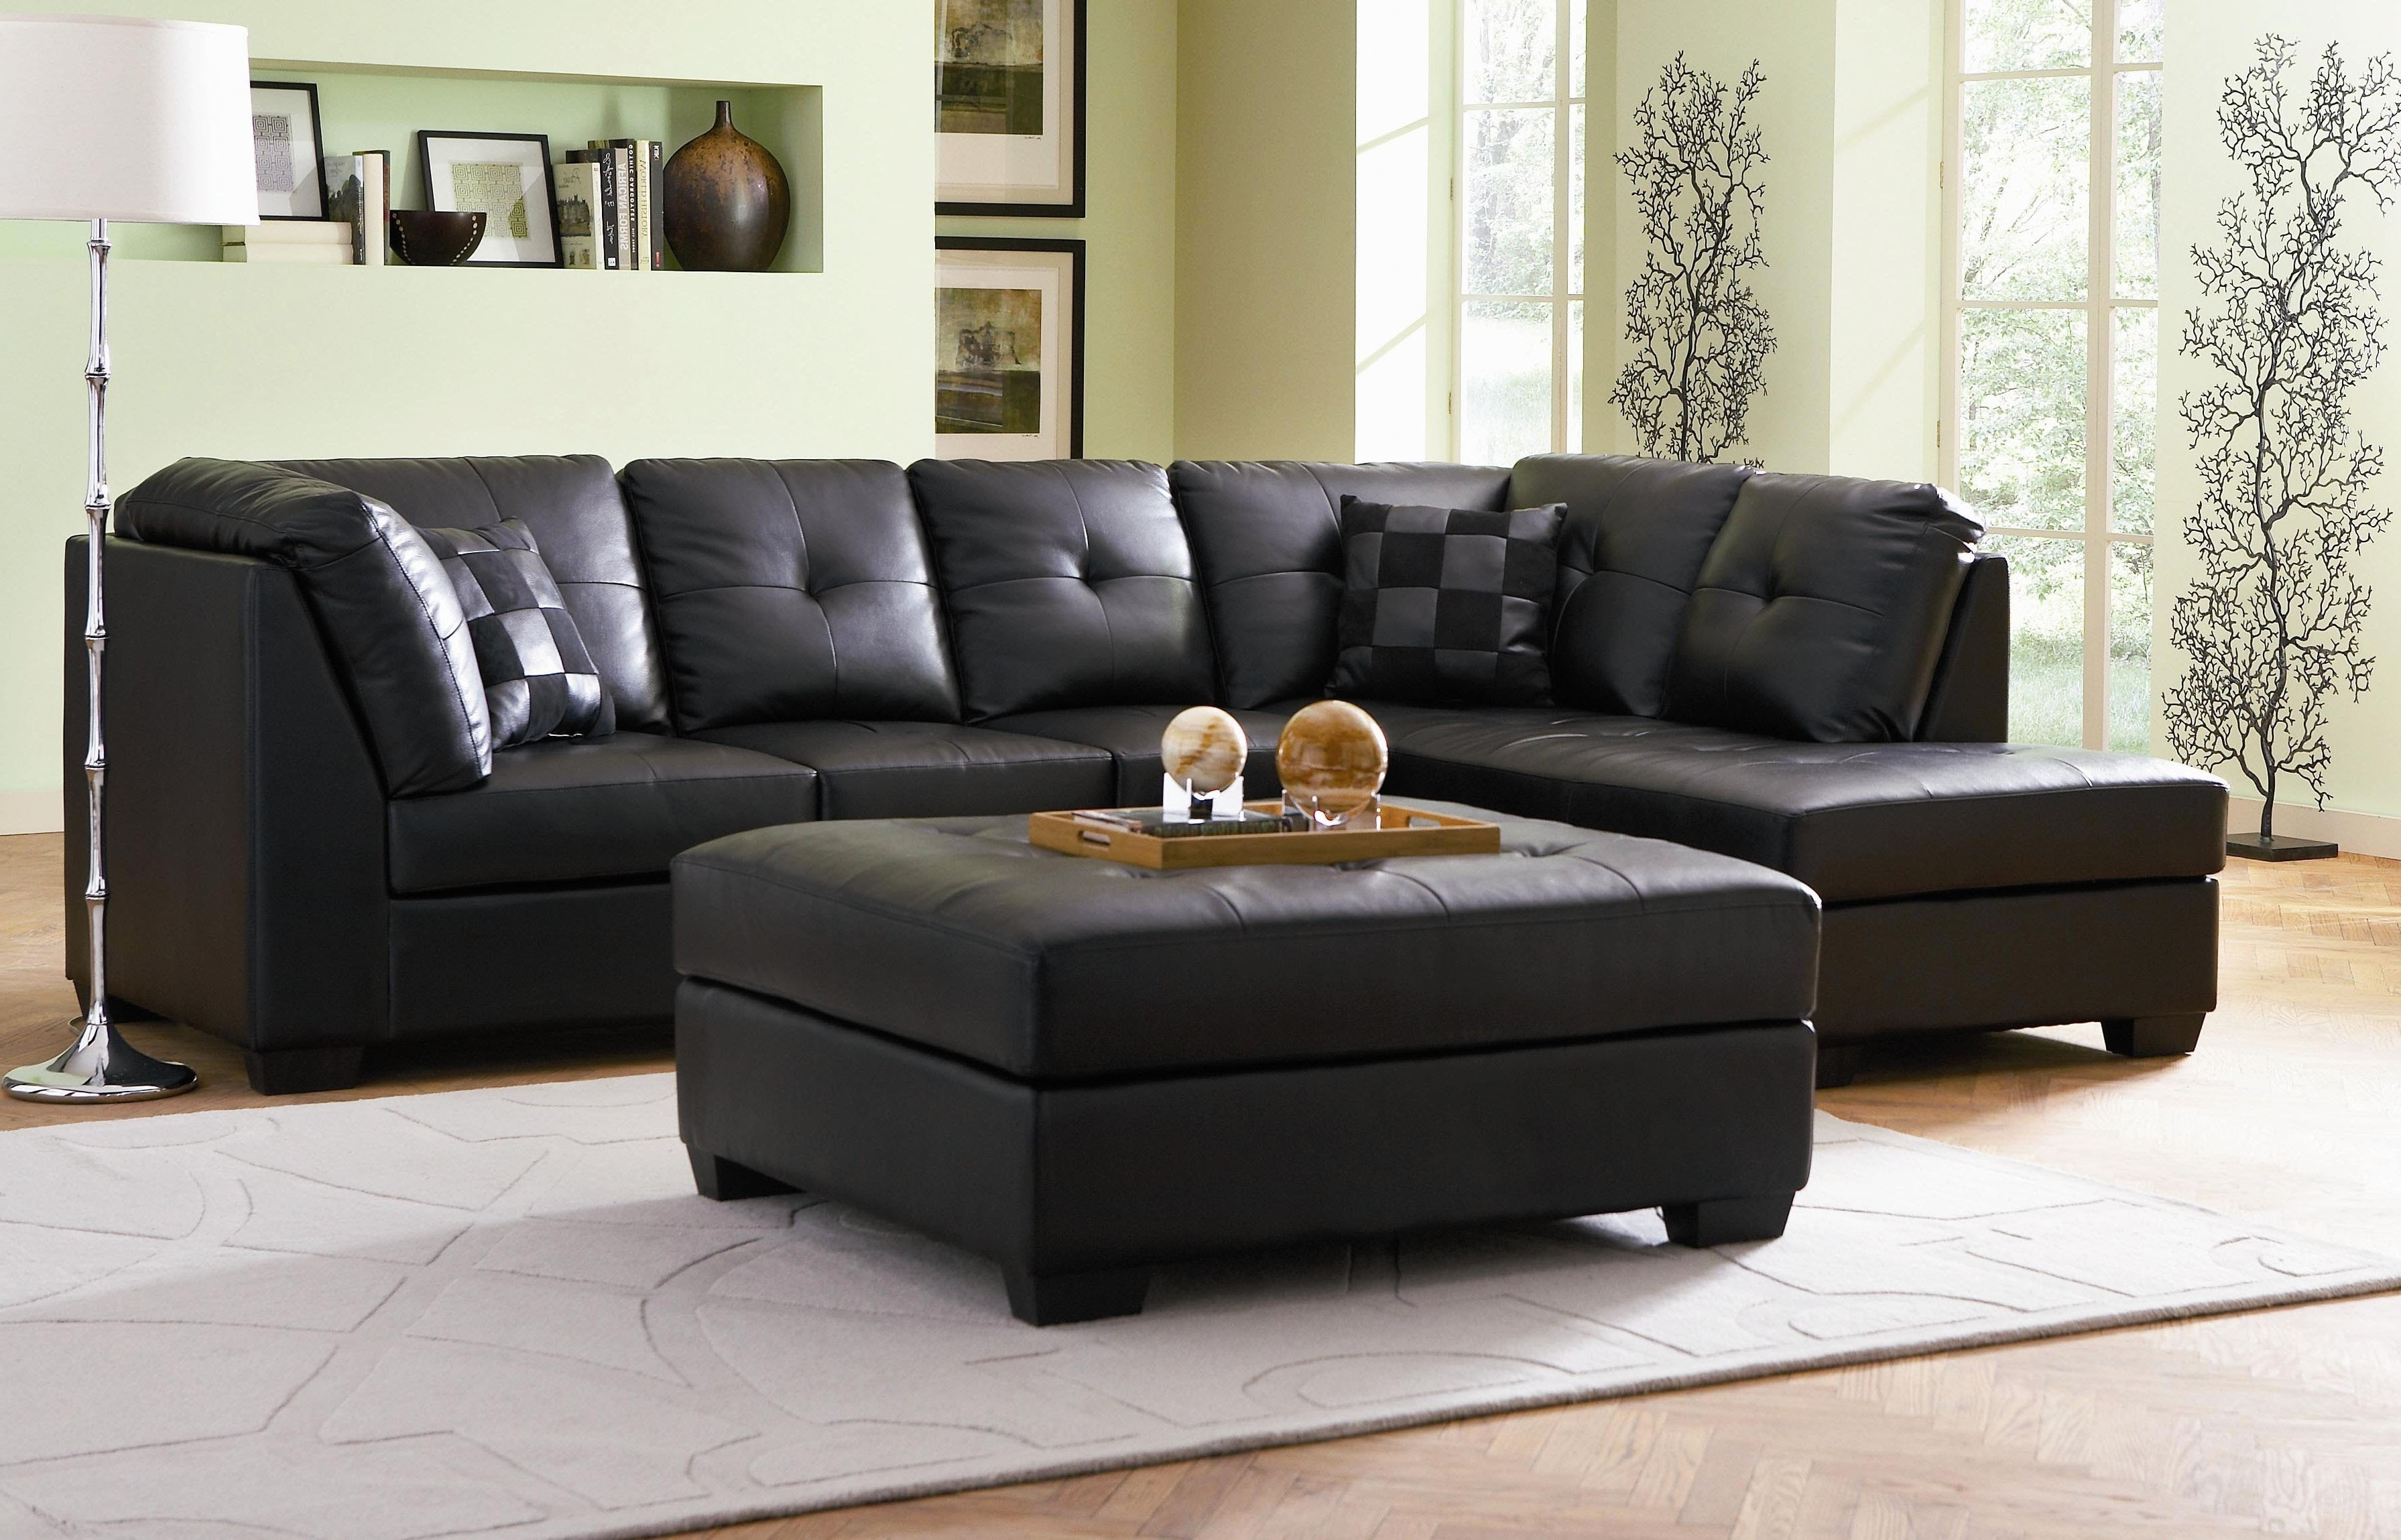 Fashionable Jacksonville Fl Sectional Sofas With Photos Sectional Sofas Jacksonville Fl – Buildsimplehome (View 7 of 20)